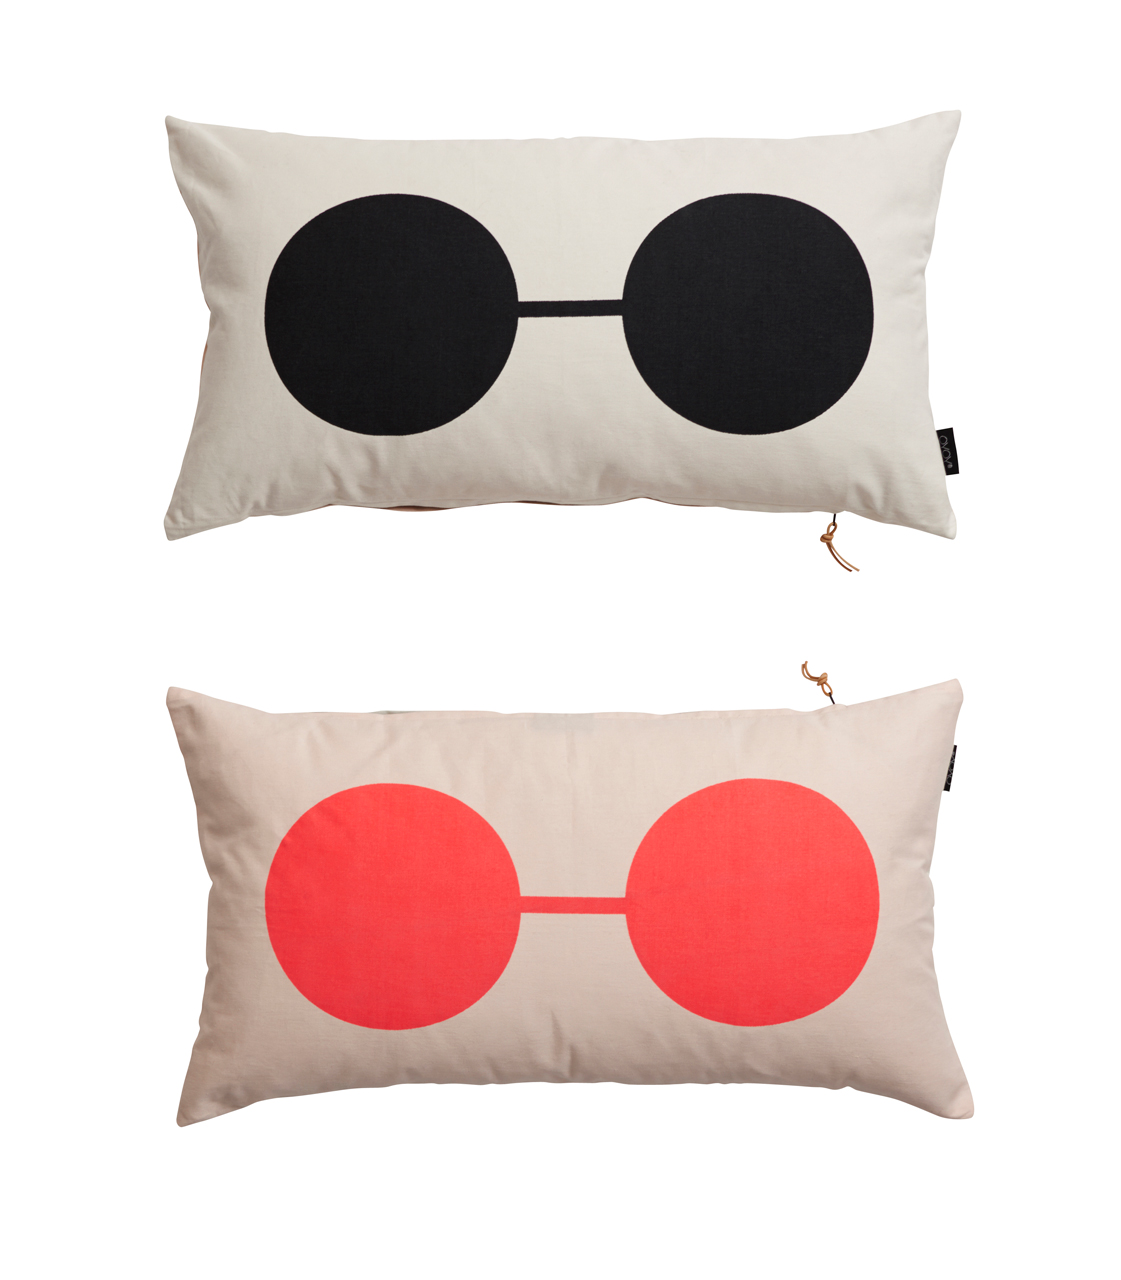 OYOY-18-Udestue-pillows